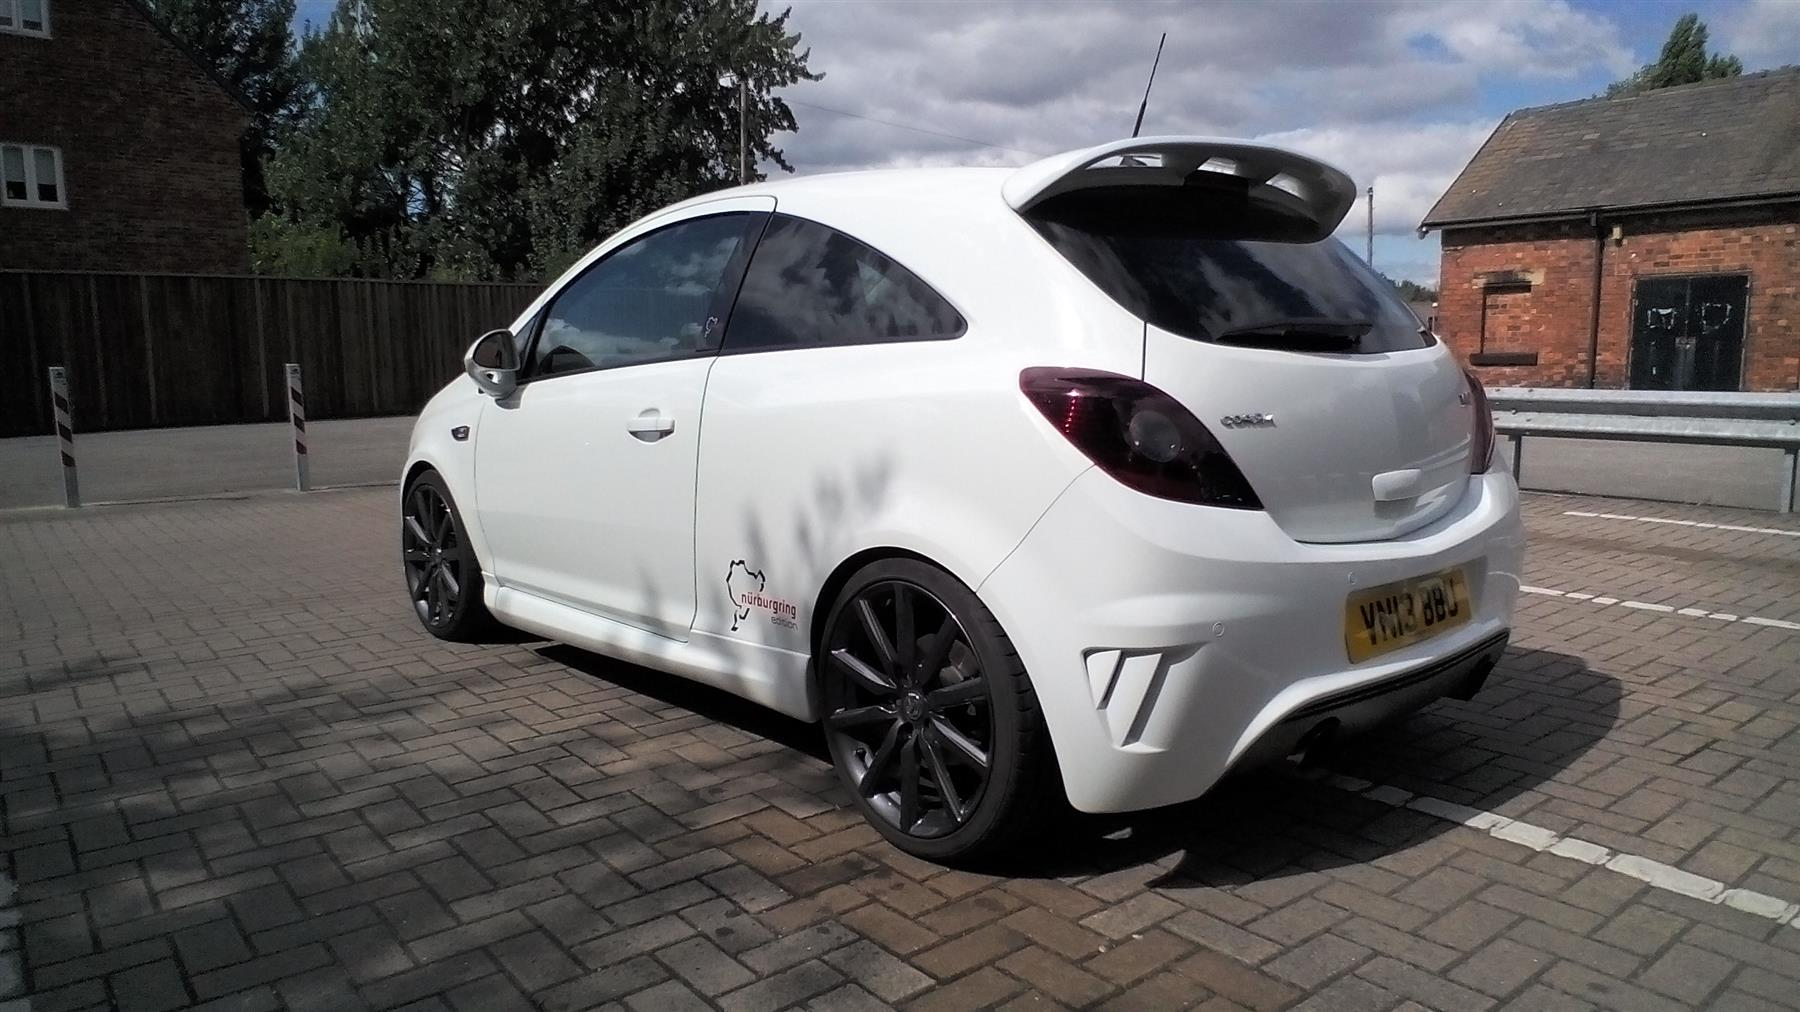 2017 Vauxhall Corsa VXR Nurburgring Edition | Car Photos ...